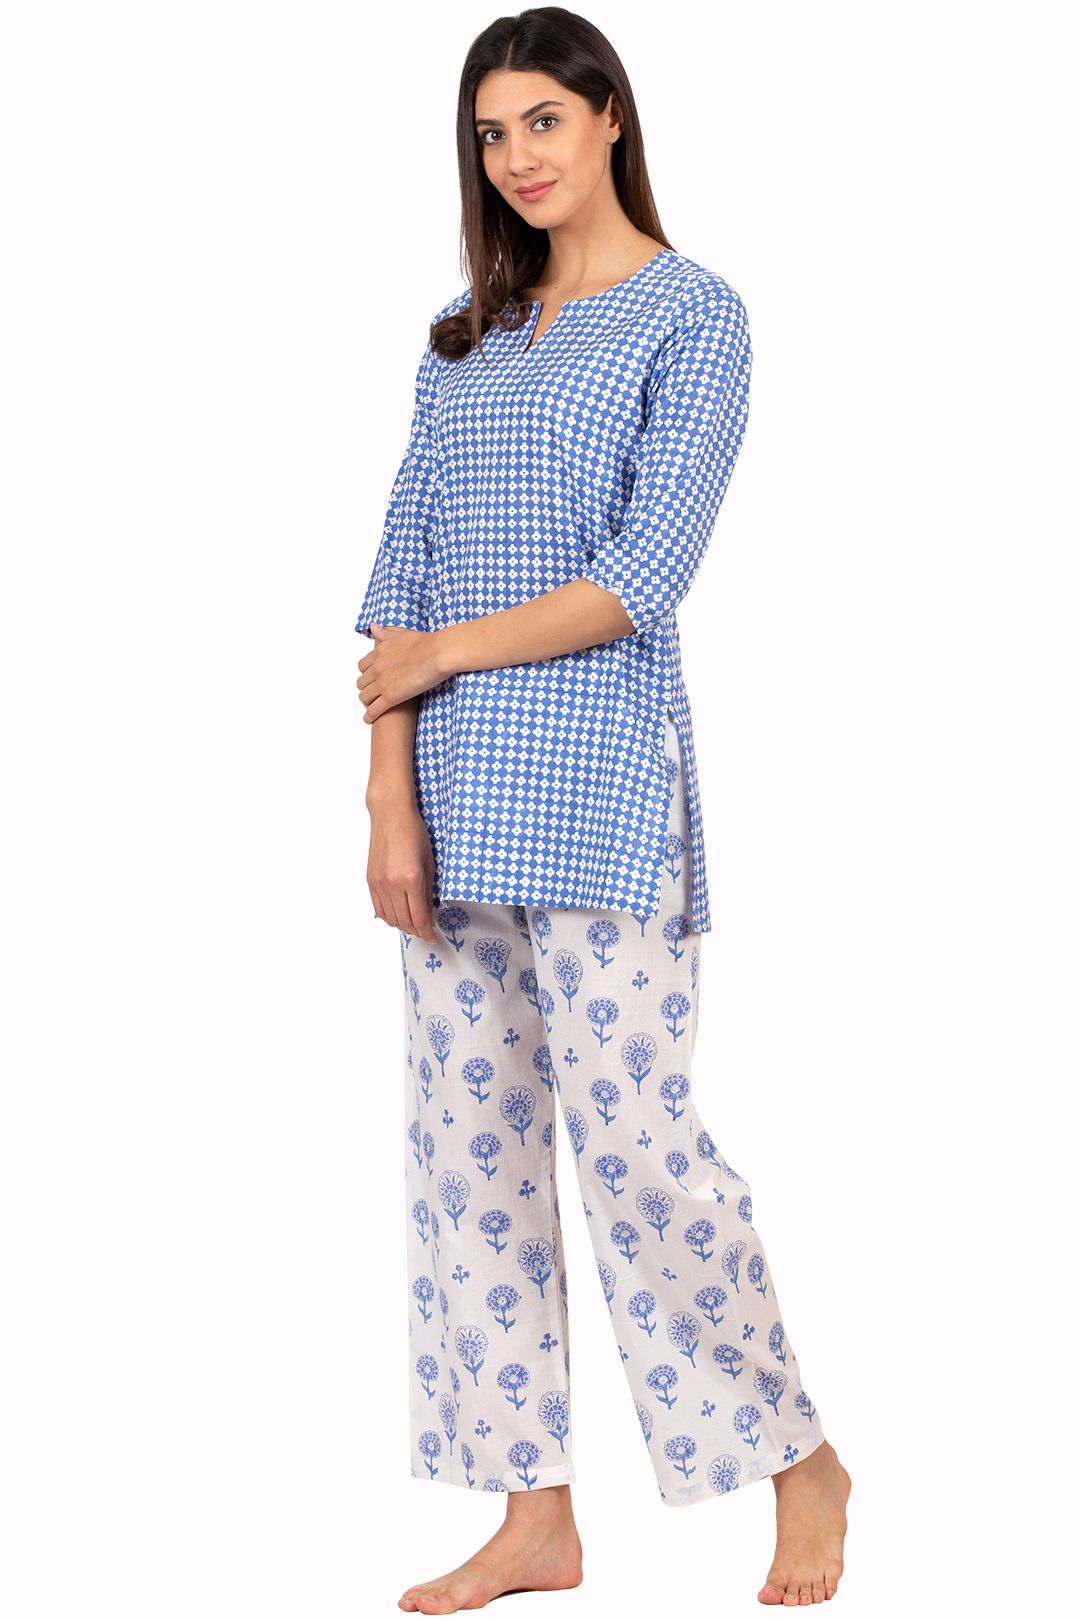 Gulbagh Sehr Nightsuit  Night suit for women, Night dress for